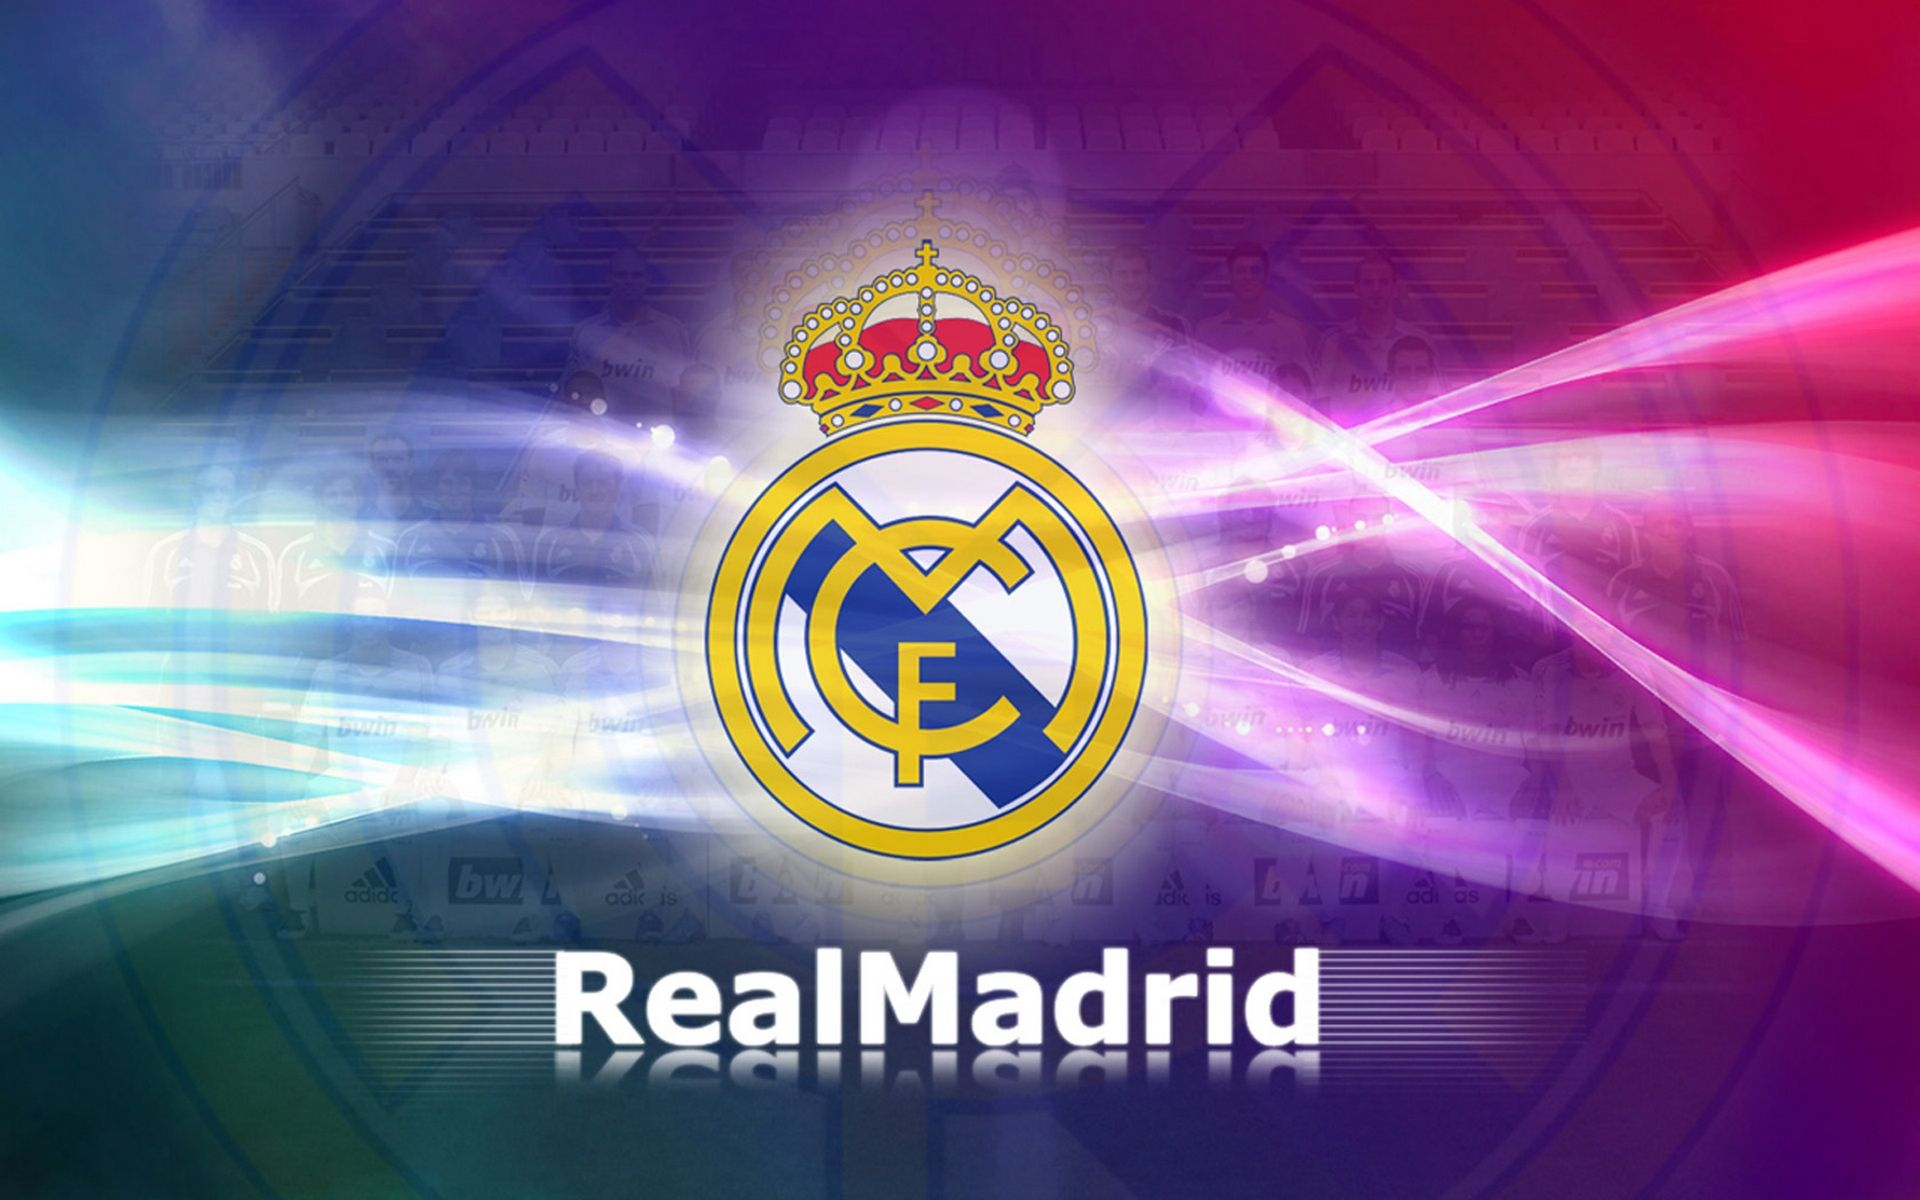 Real Madrid Uefa Champions League Best Wallpaper Hd Real Madrid Wallpapers Real Madrid Logo Wallpapers Real Madrid Logo